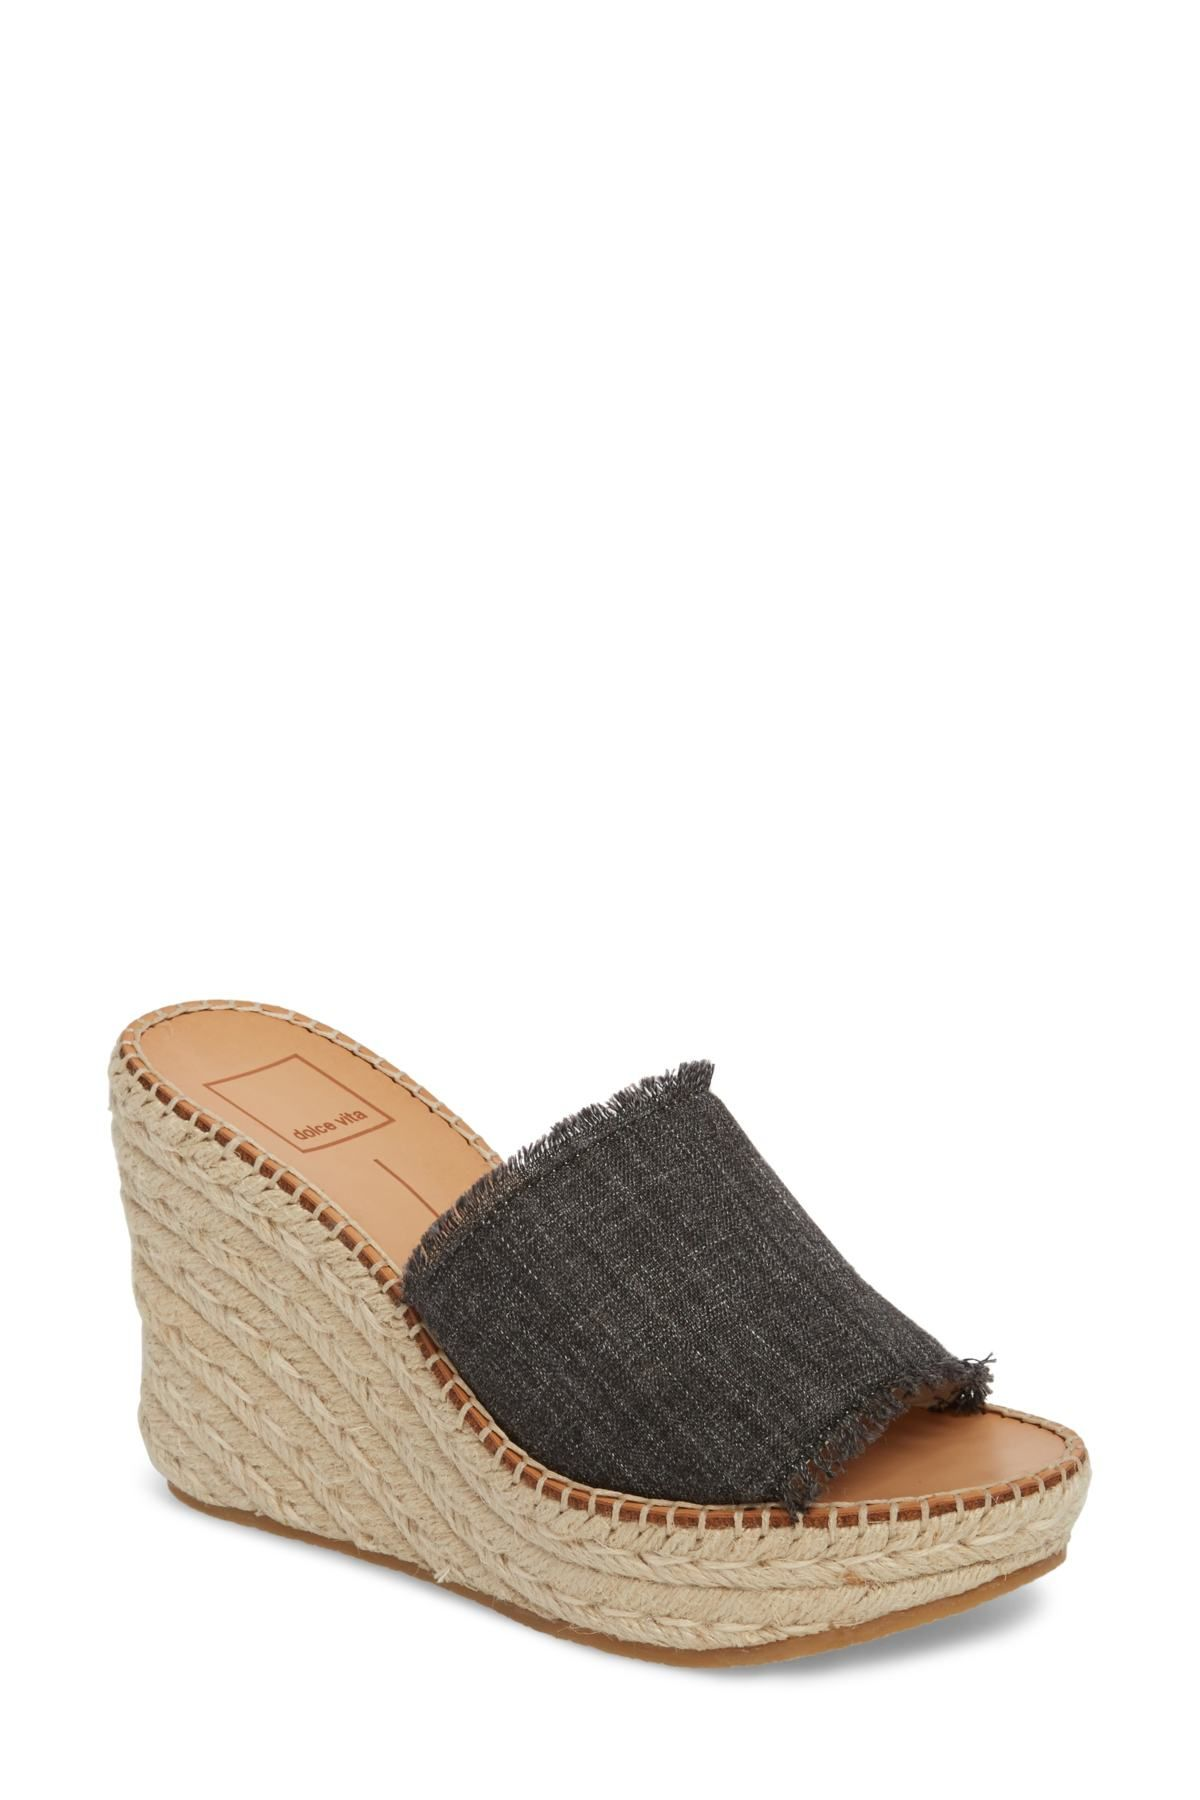 f4a7796f62 Dolce Vita | Pim Platform Wedge Slide in 2019 | Shoes, shoes, and ...